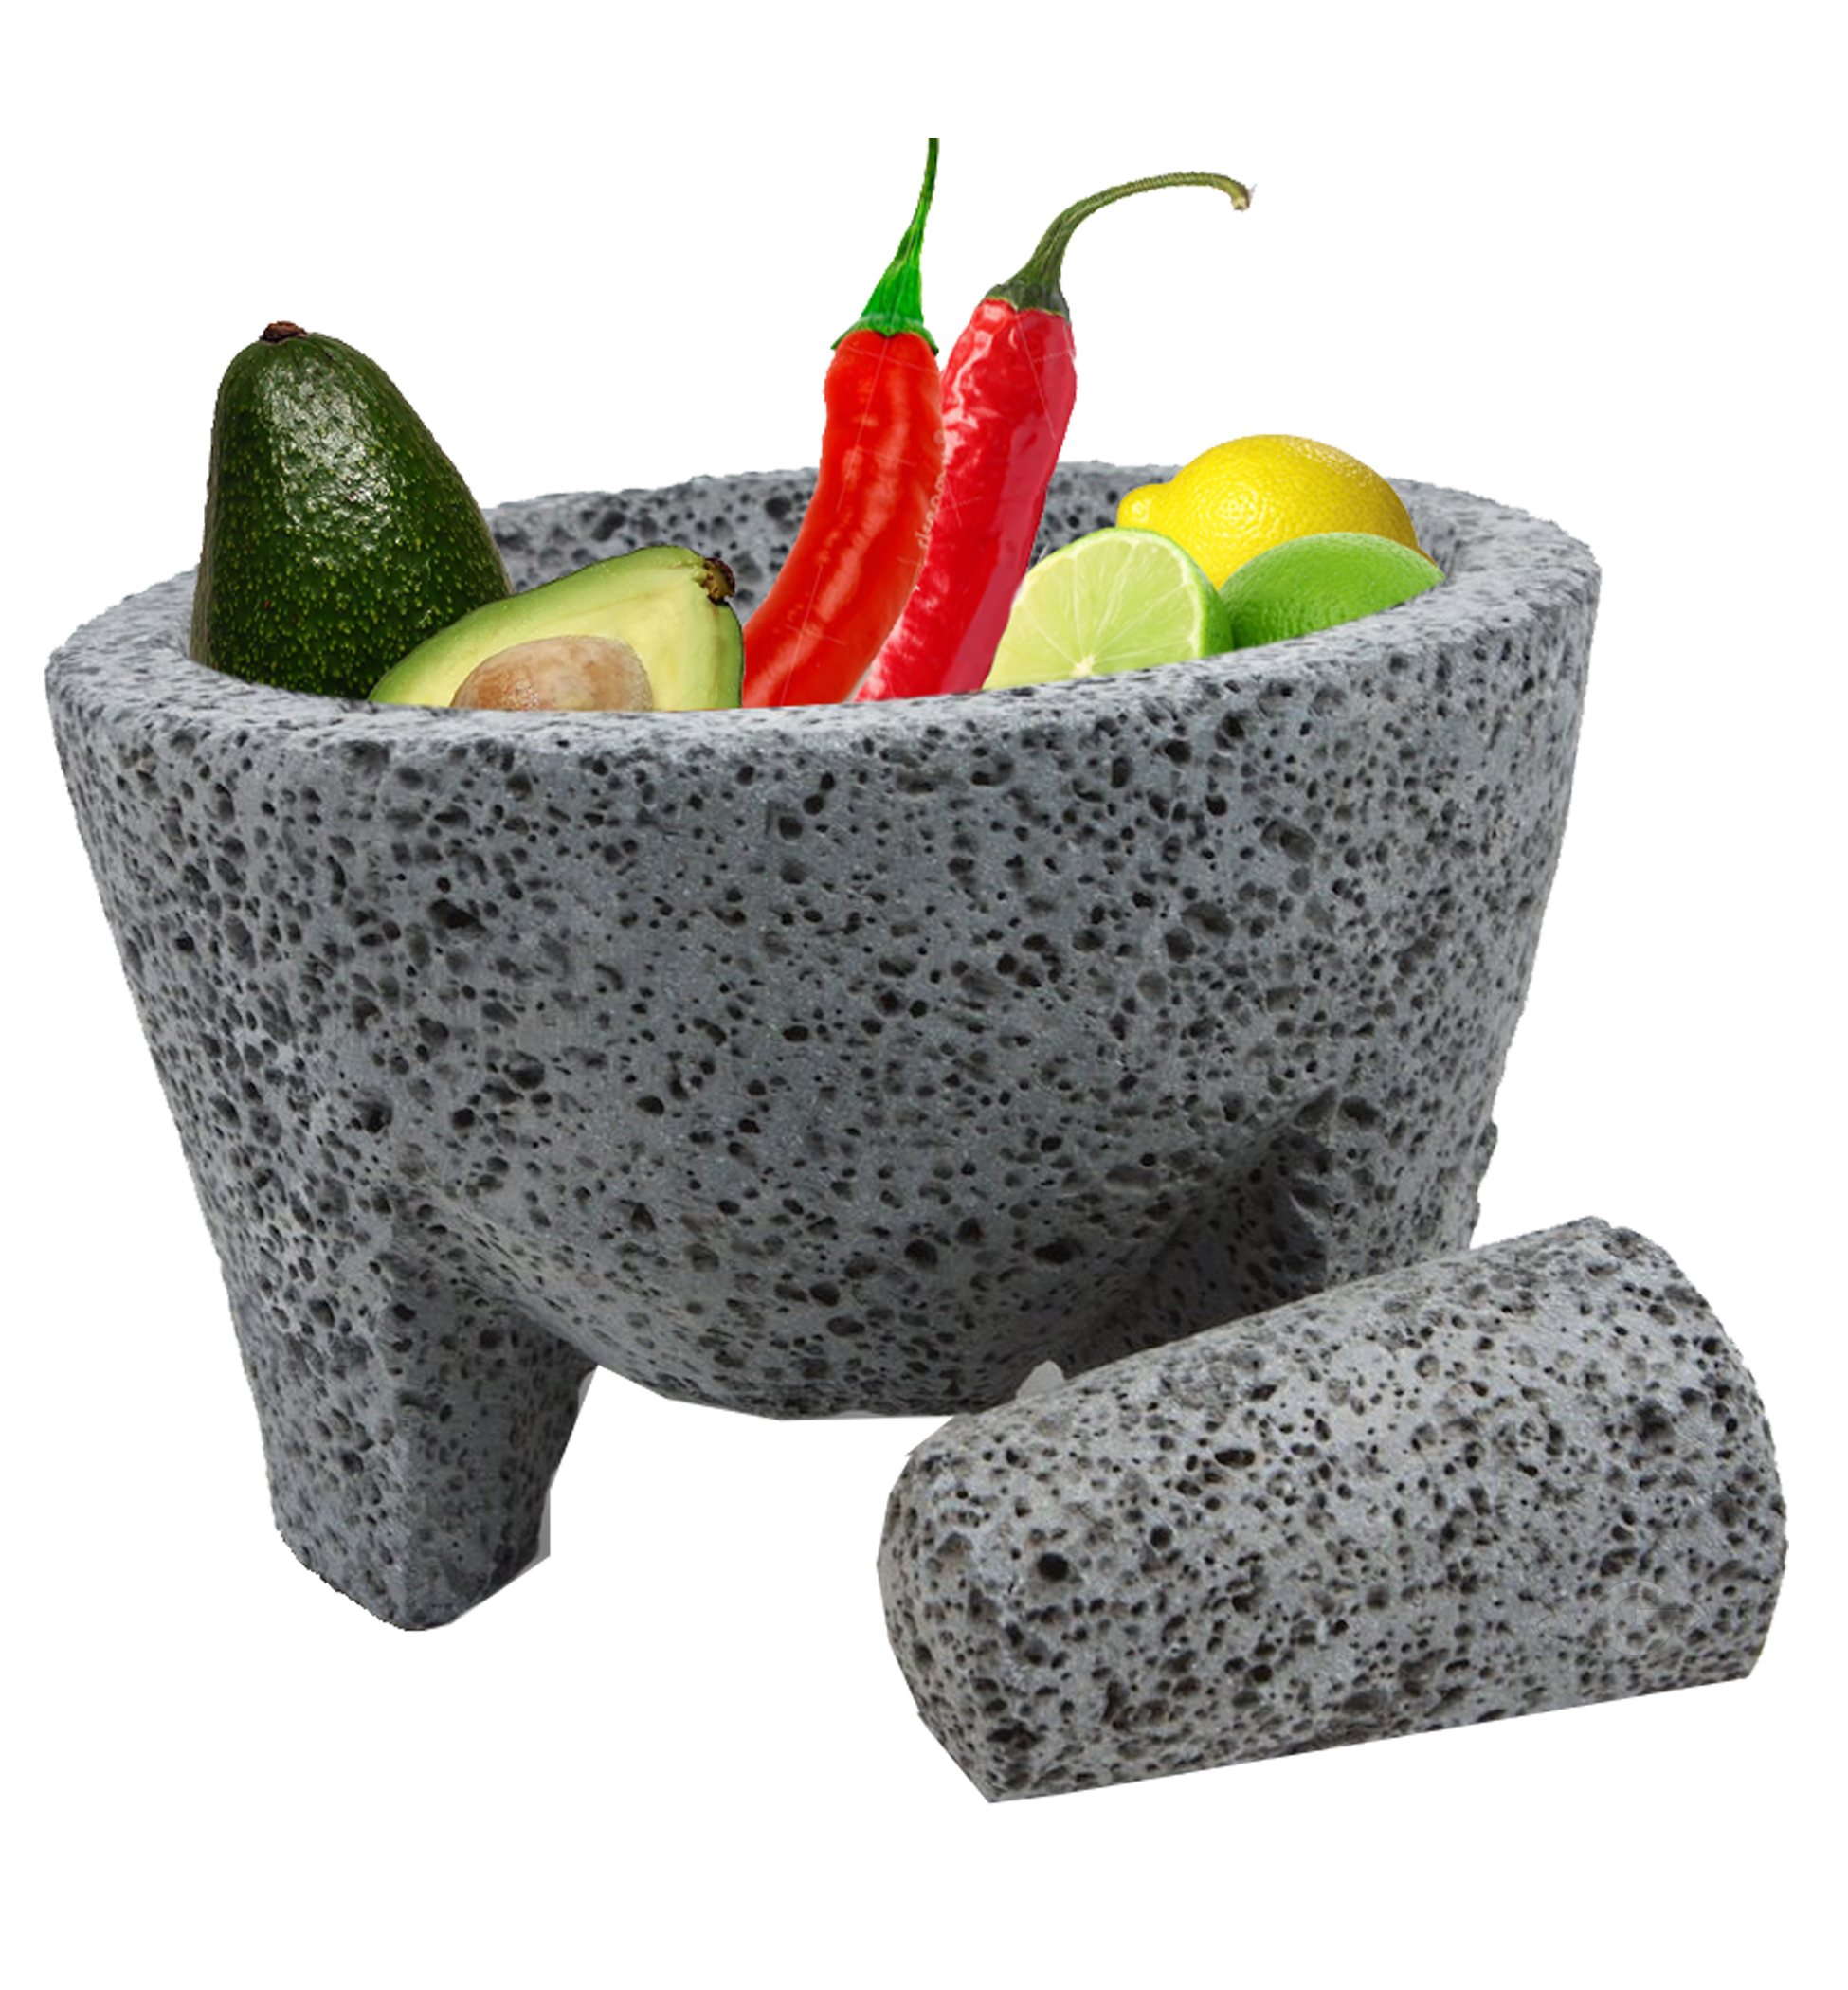 TLP Molcajete Mexican Mortar and Pestle 8.5 in - Handmade - Mortar and Pestel (Pack of 1)